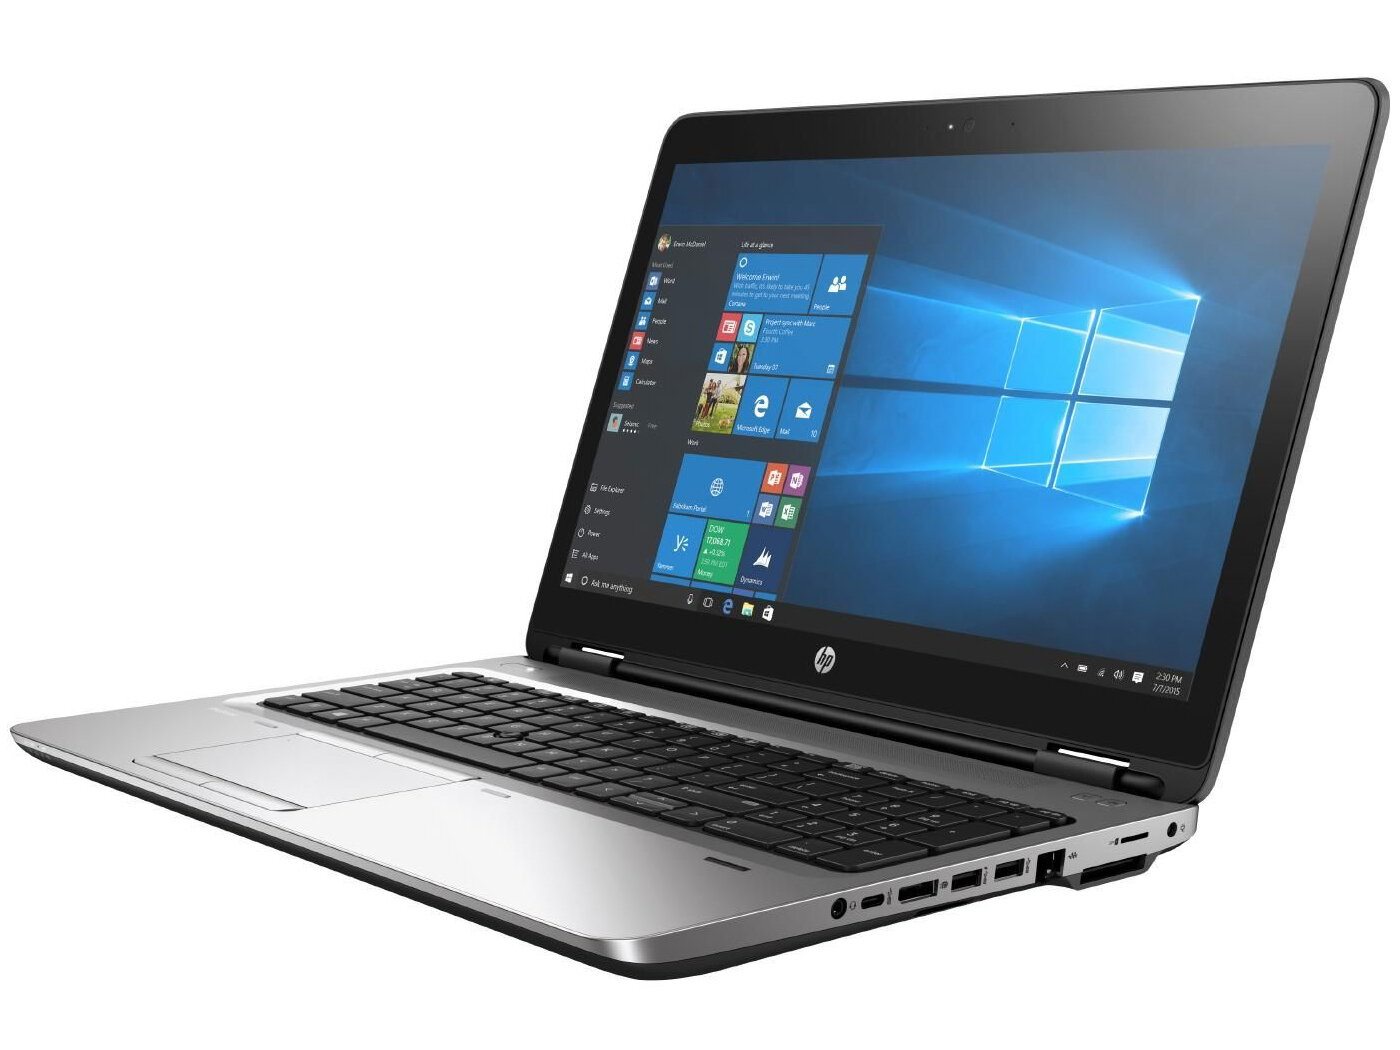 HP ProBook 650 G3 Notebook PC (Z2W56EA)